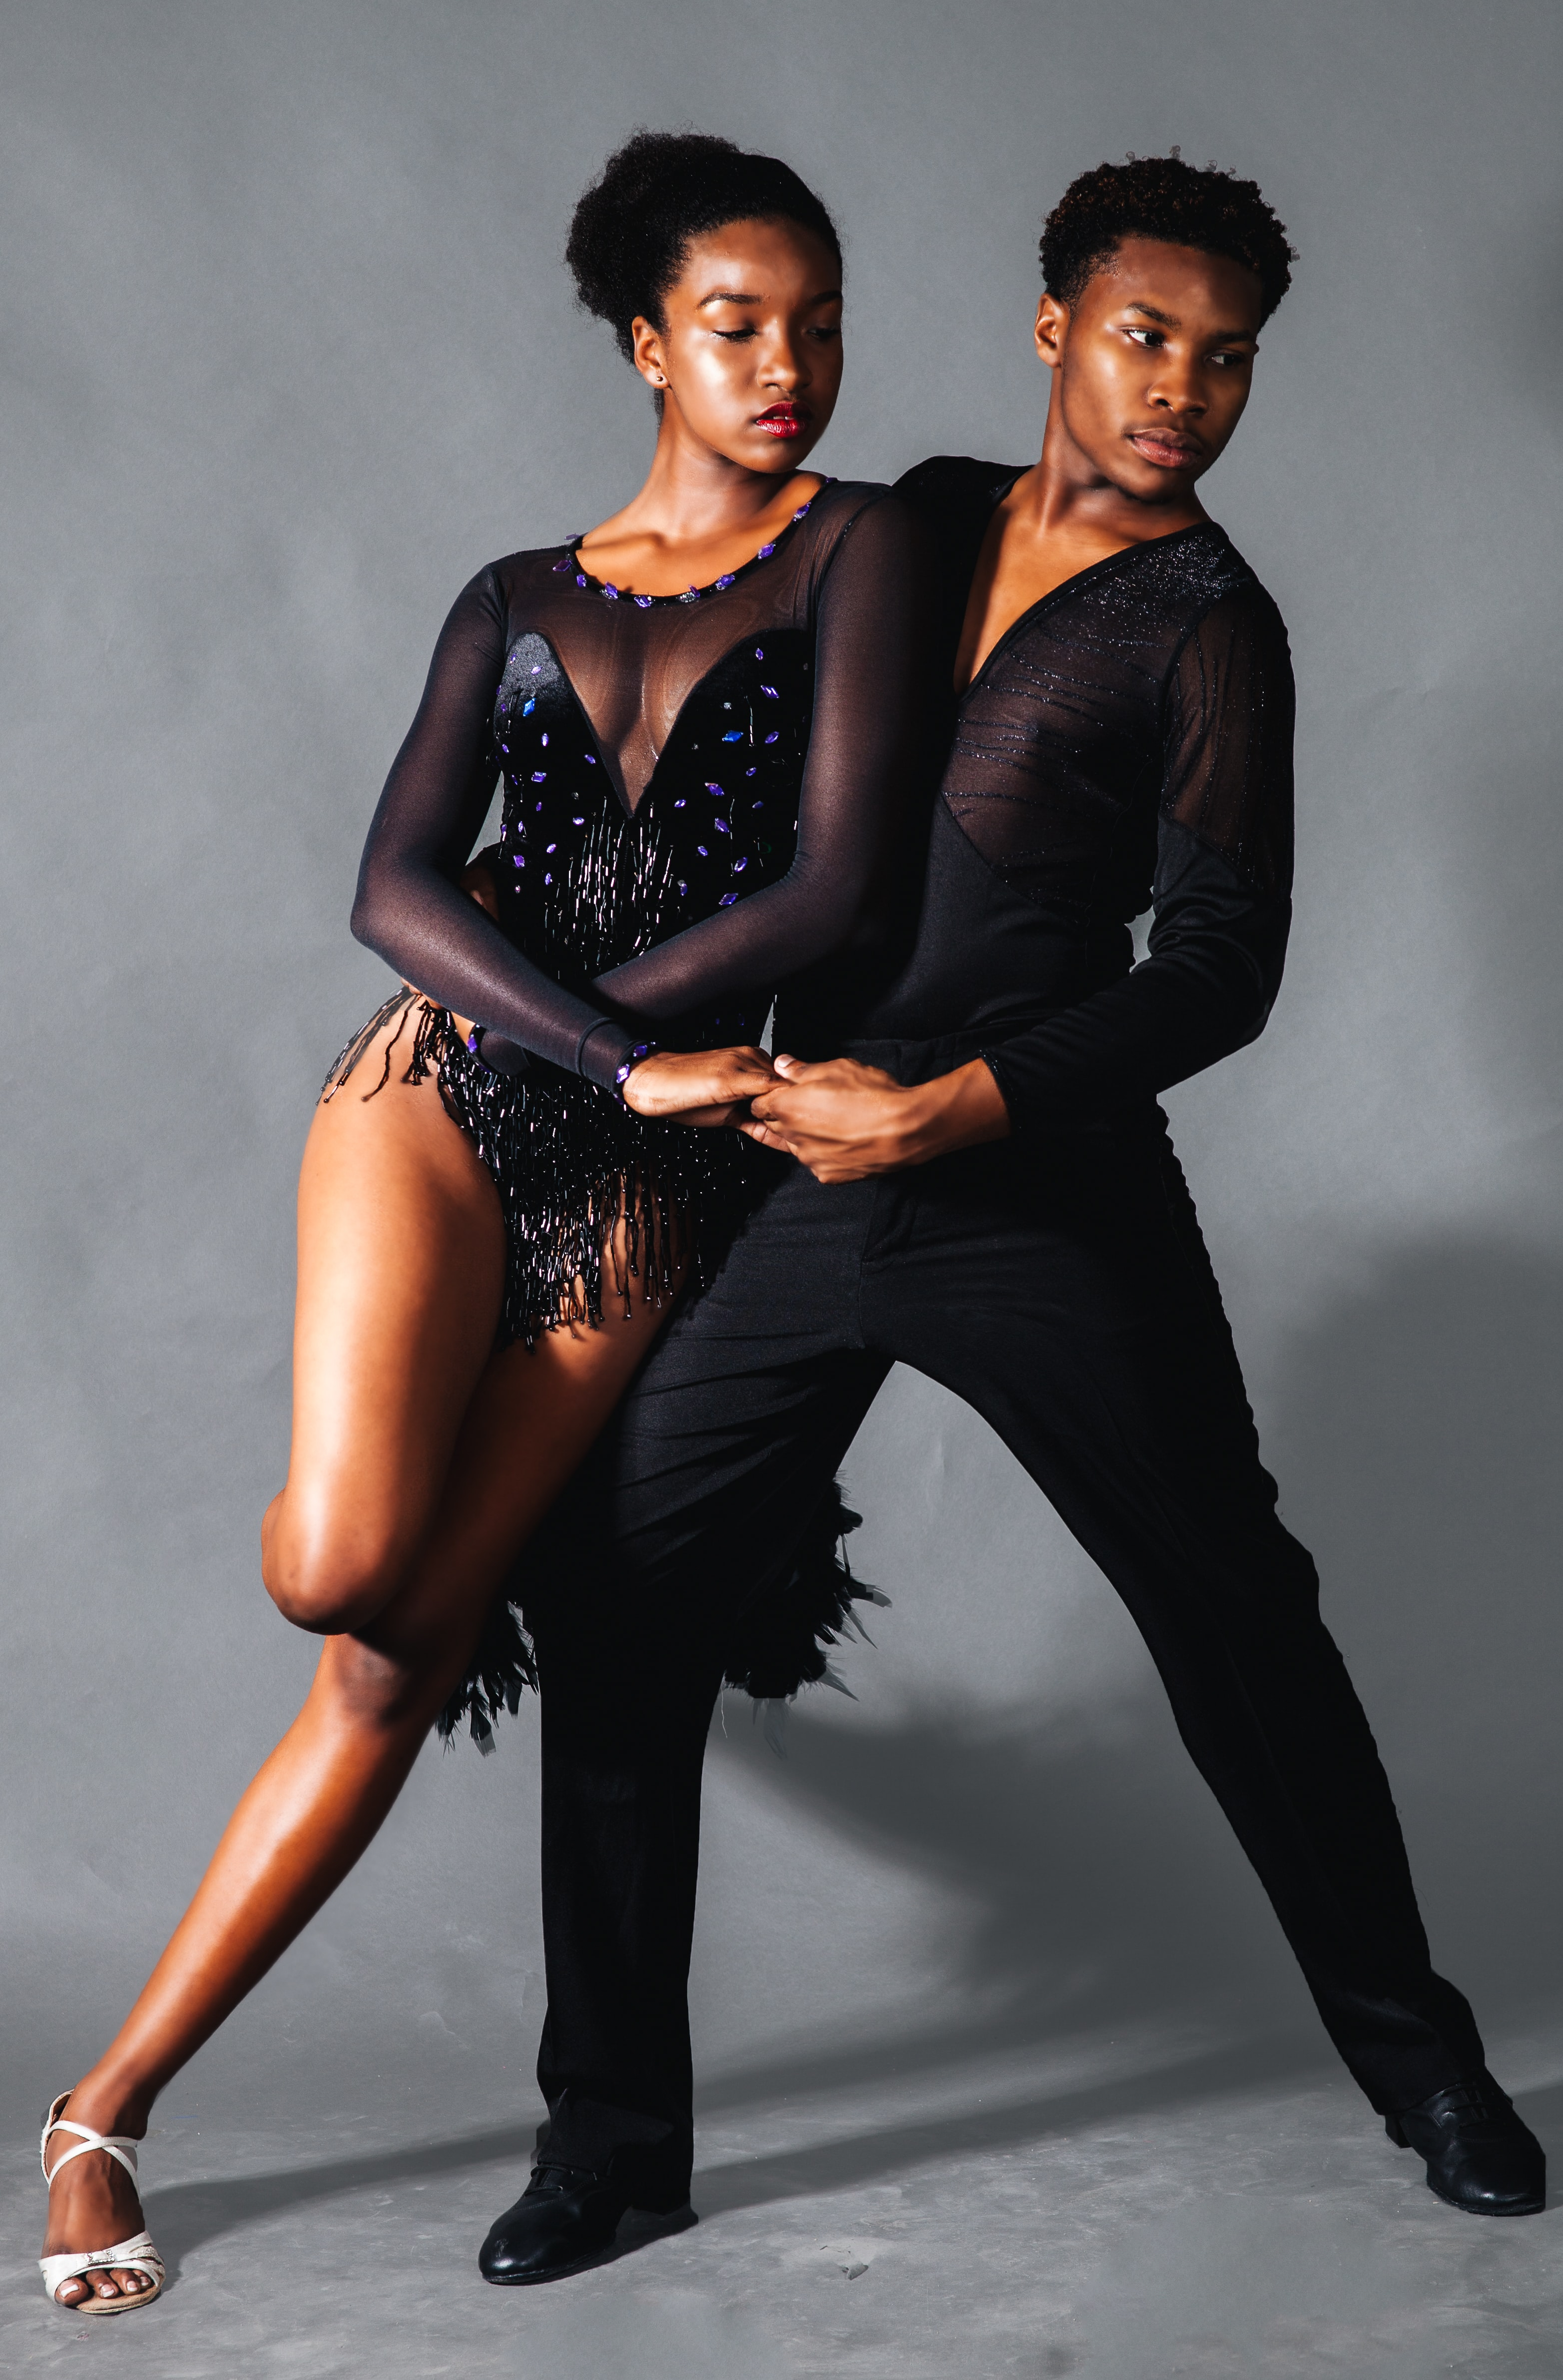 What's in a Name? A reflection on the colonial roots of ballroom dances